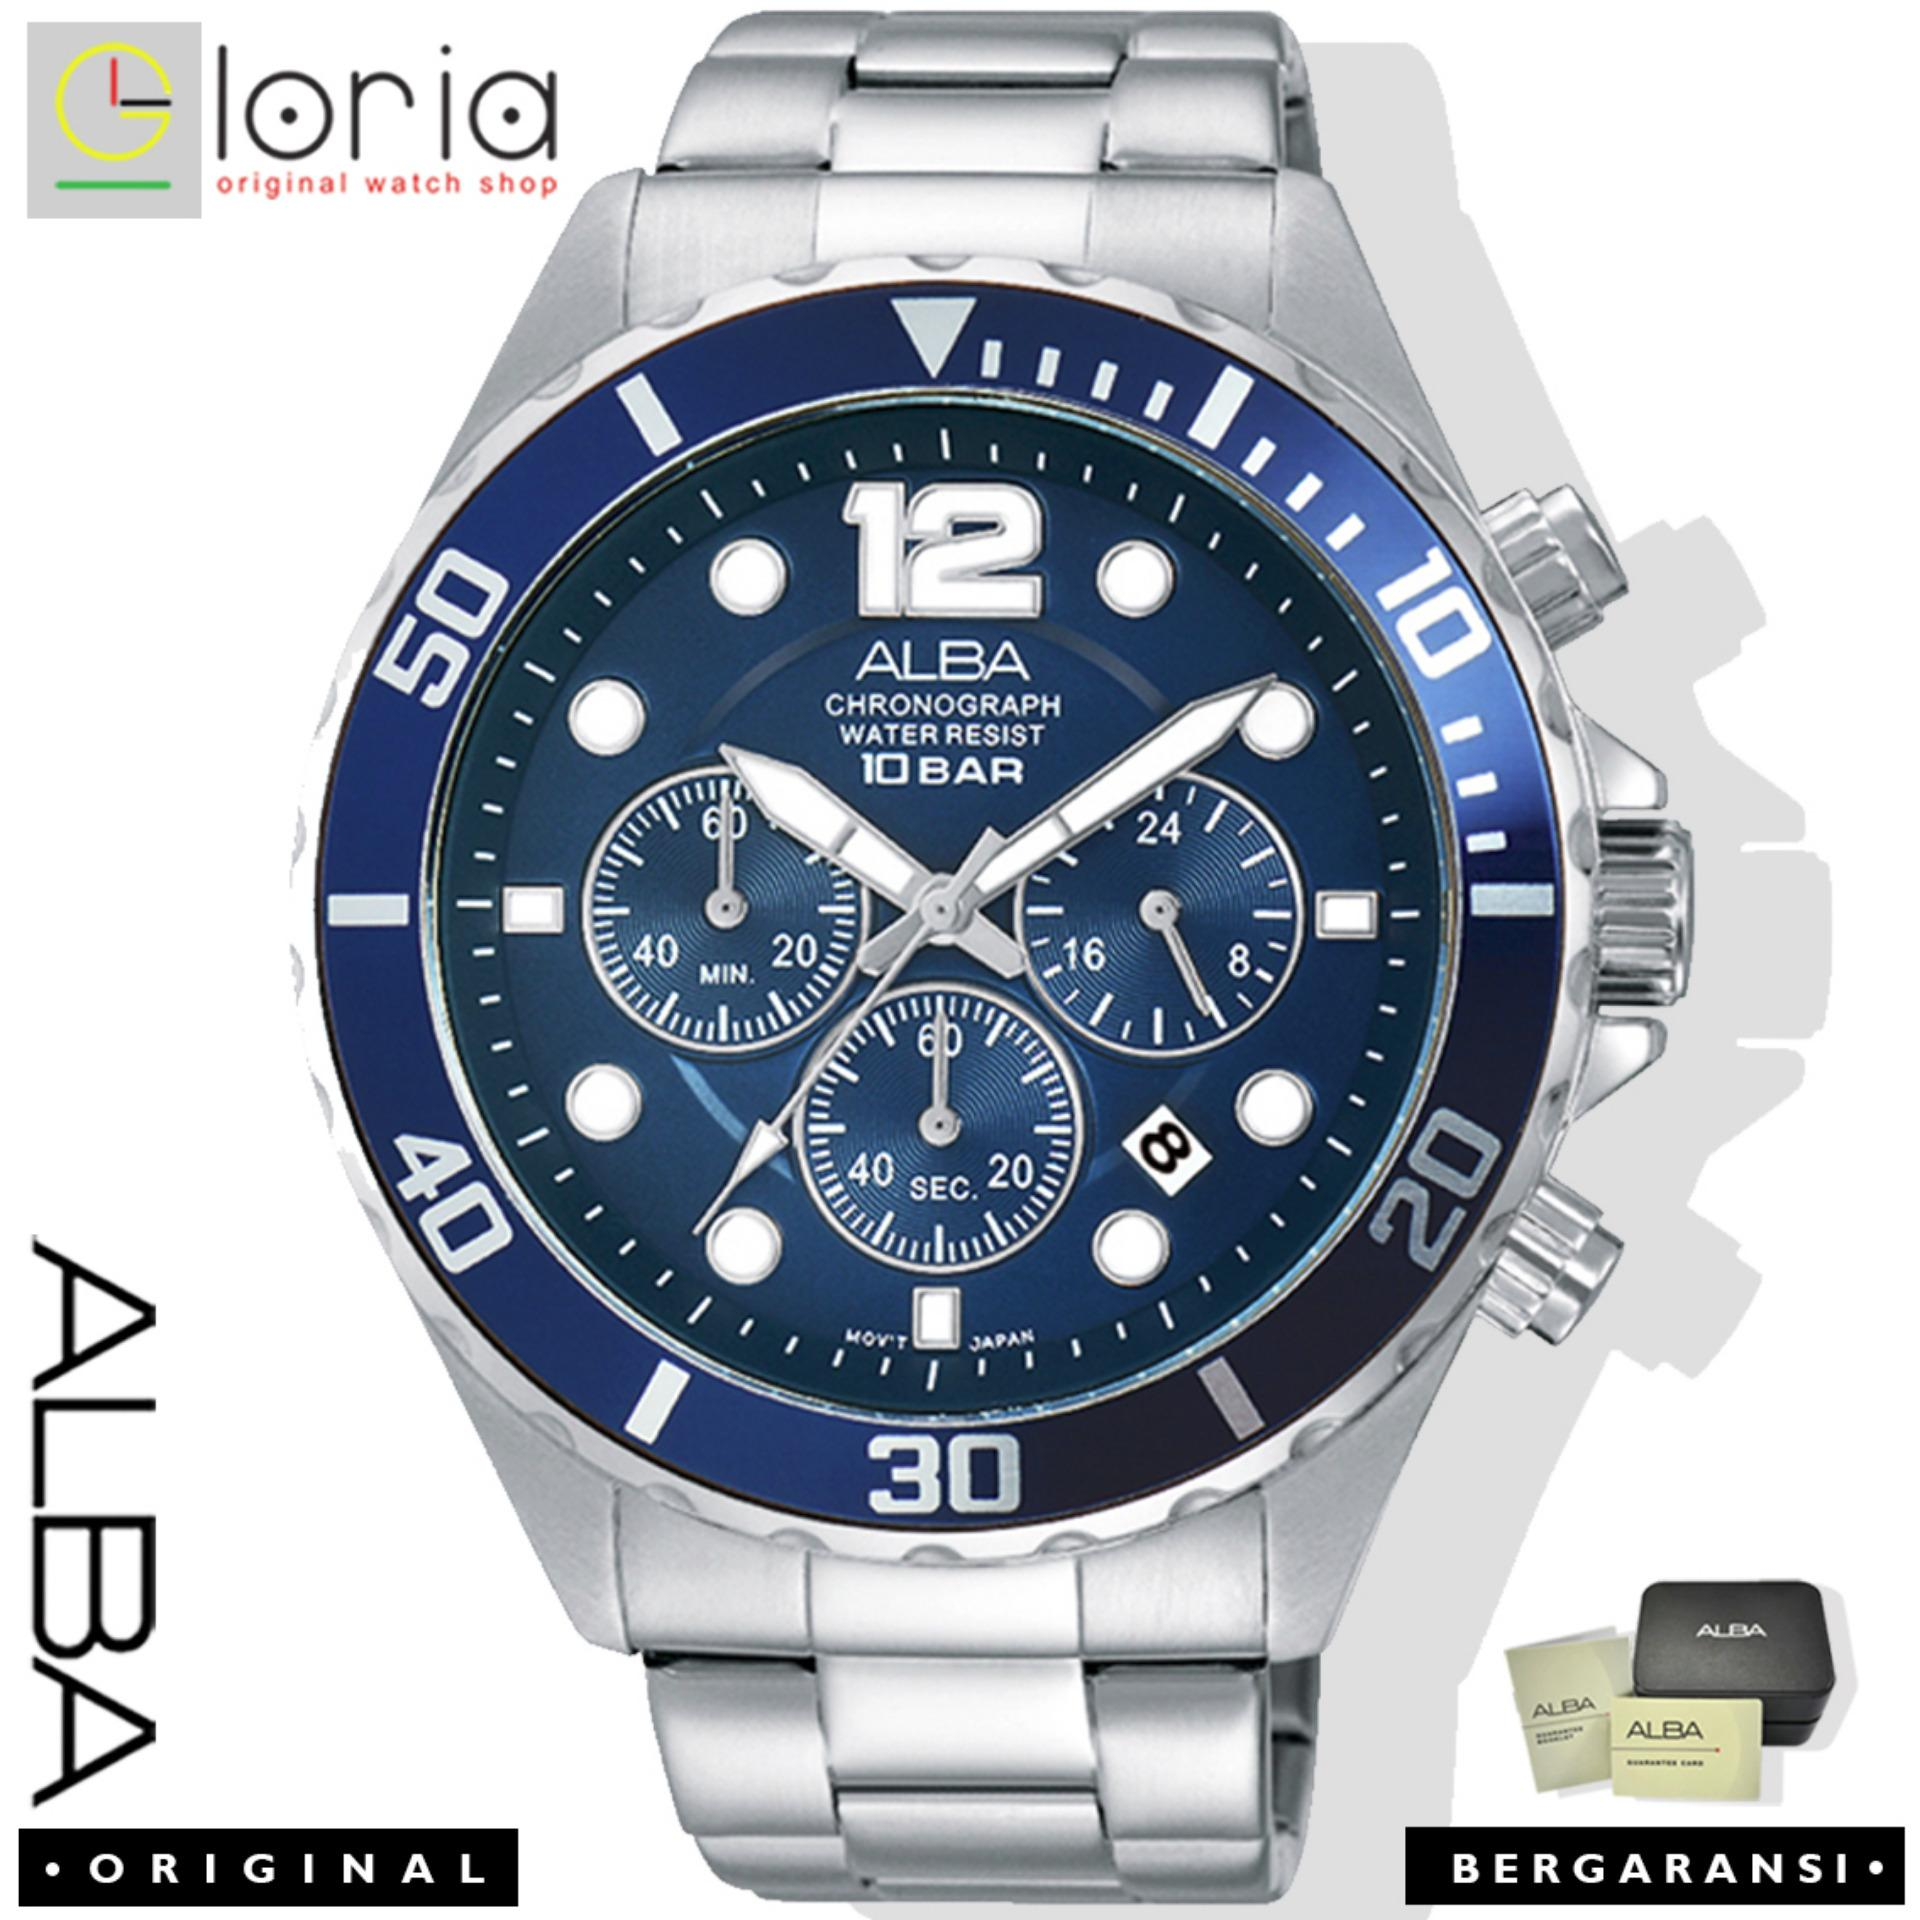 Alba AT3911x1 Chronograph Jam Tangan Pria Strap Stainless Steel - Blue